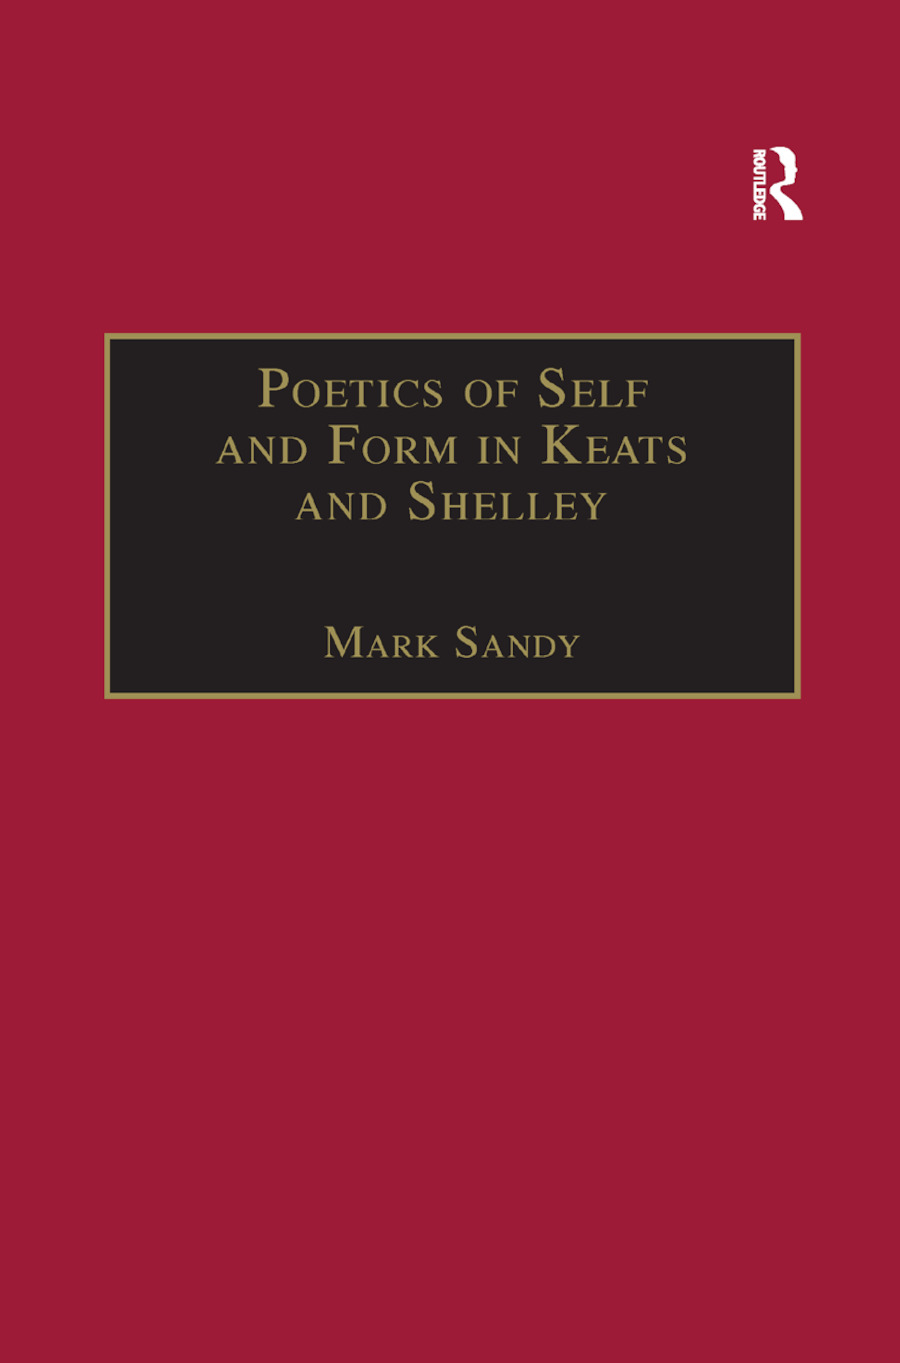 Poetics of Self and Form in Keats and Shelley